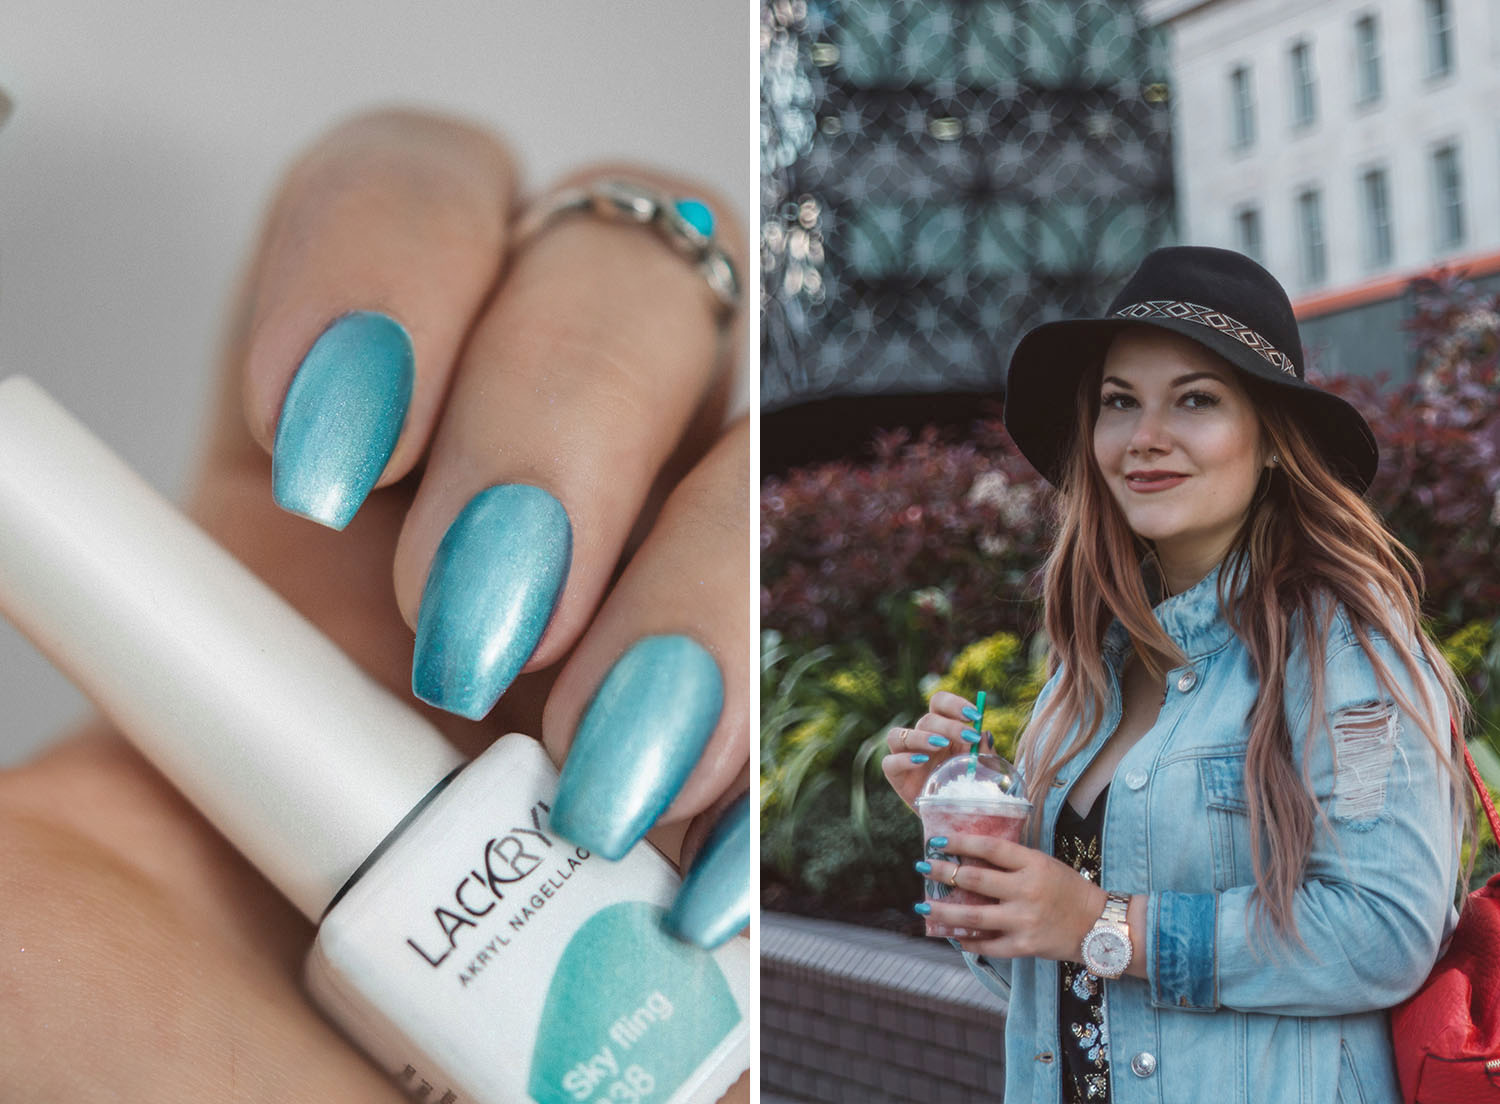 Lackryl Sky Fling Turquoise Nails